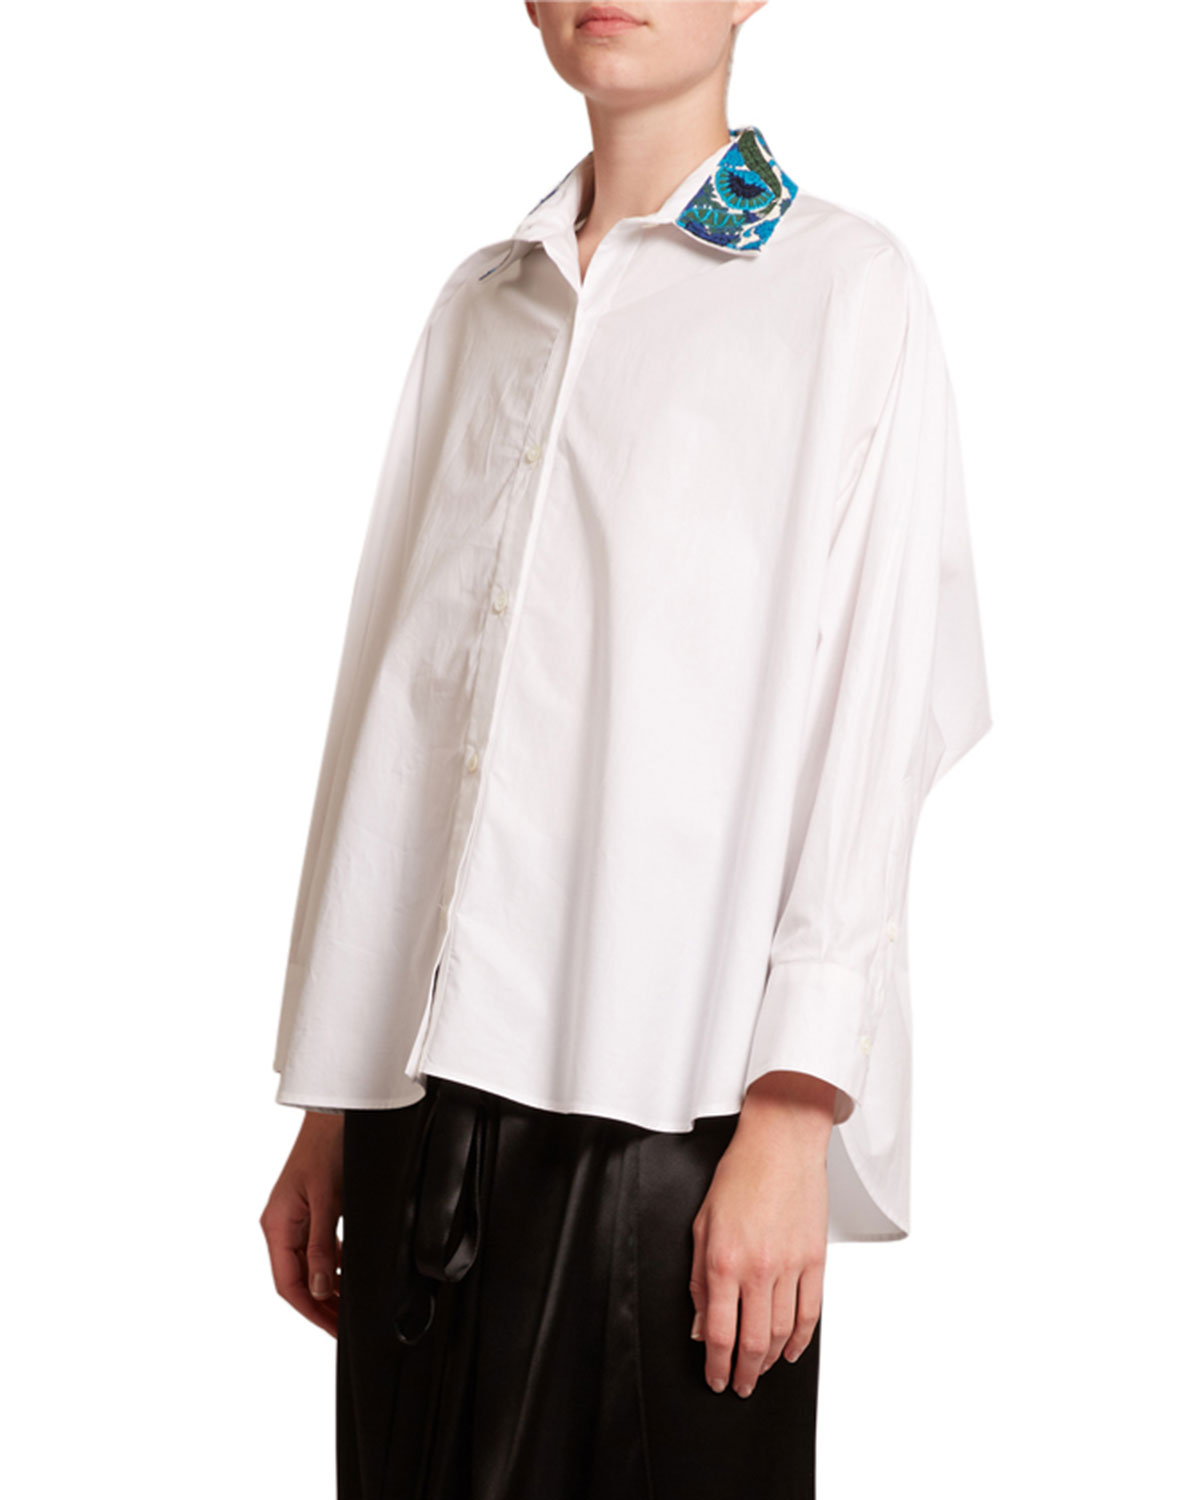 Loewe Shirts EMBROIDERED-COLLAR BUTTON-FRONT SHIRT